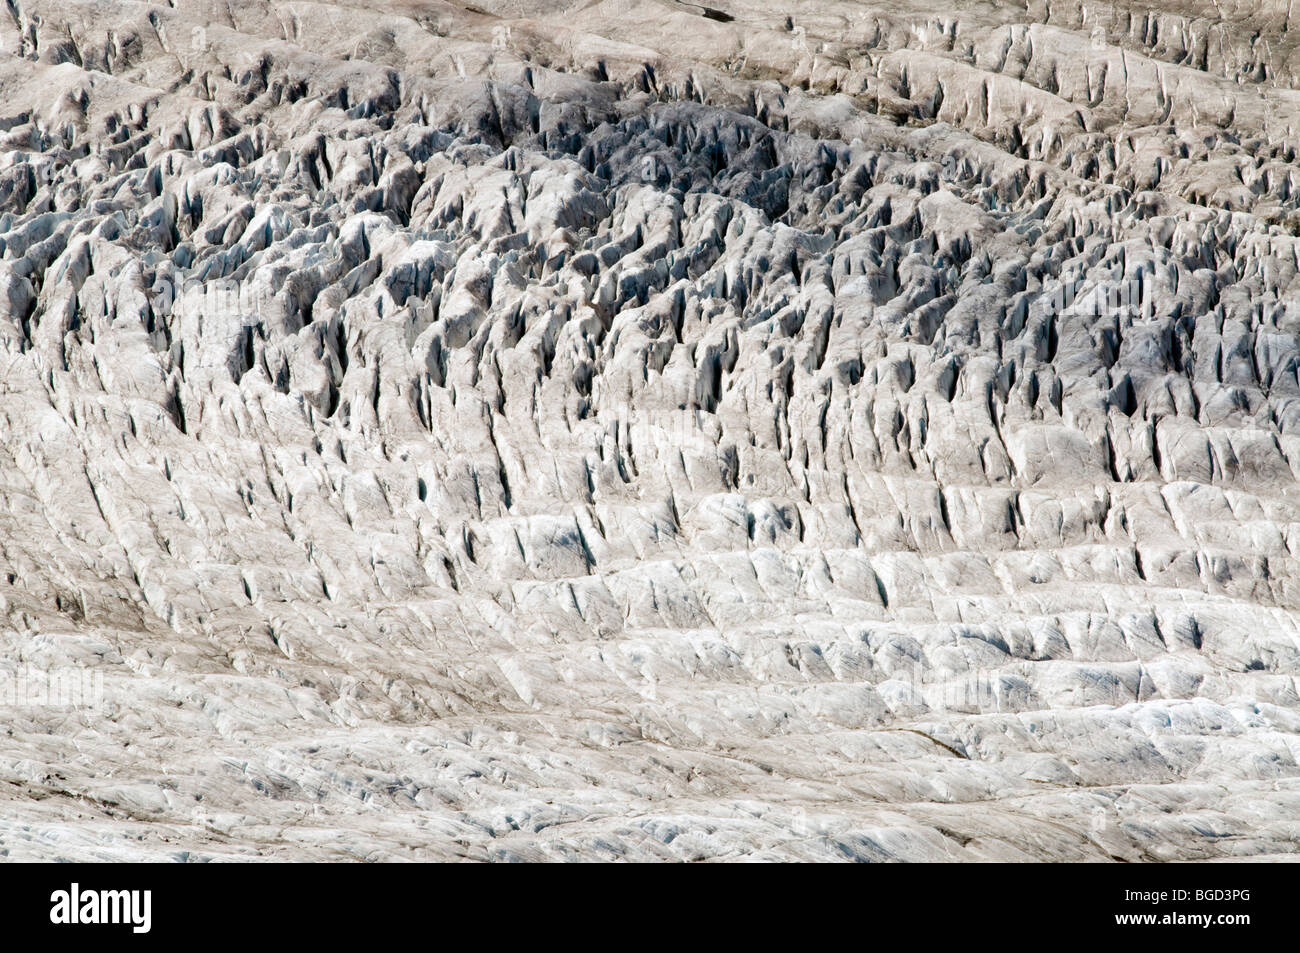 Glacial structures, Aletsch Glacier, Bernese Alps, Valais, Switzerland, Europe - Stock Image